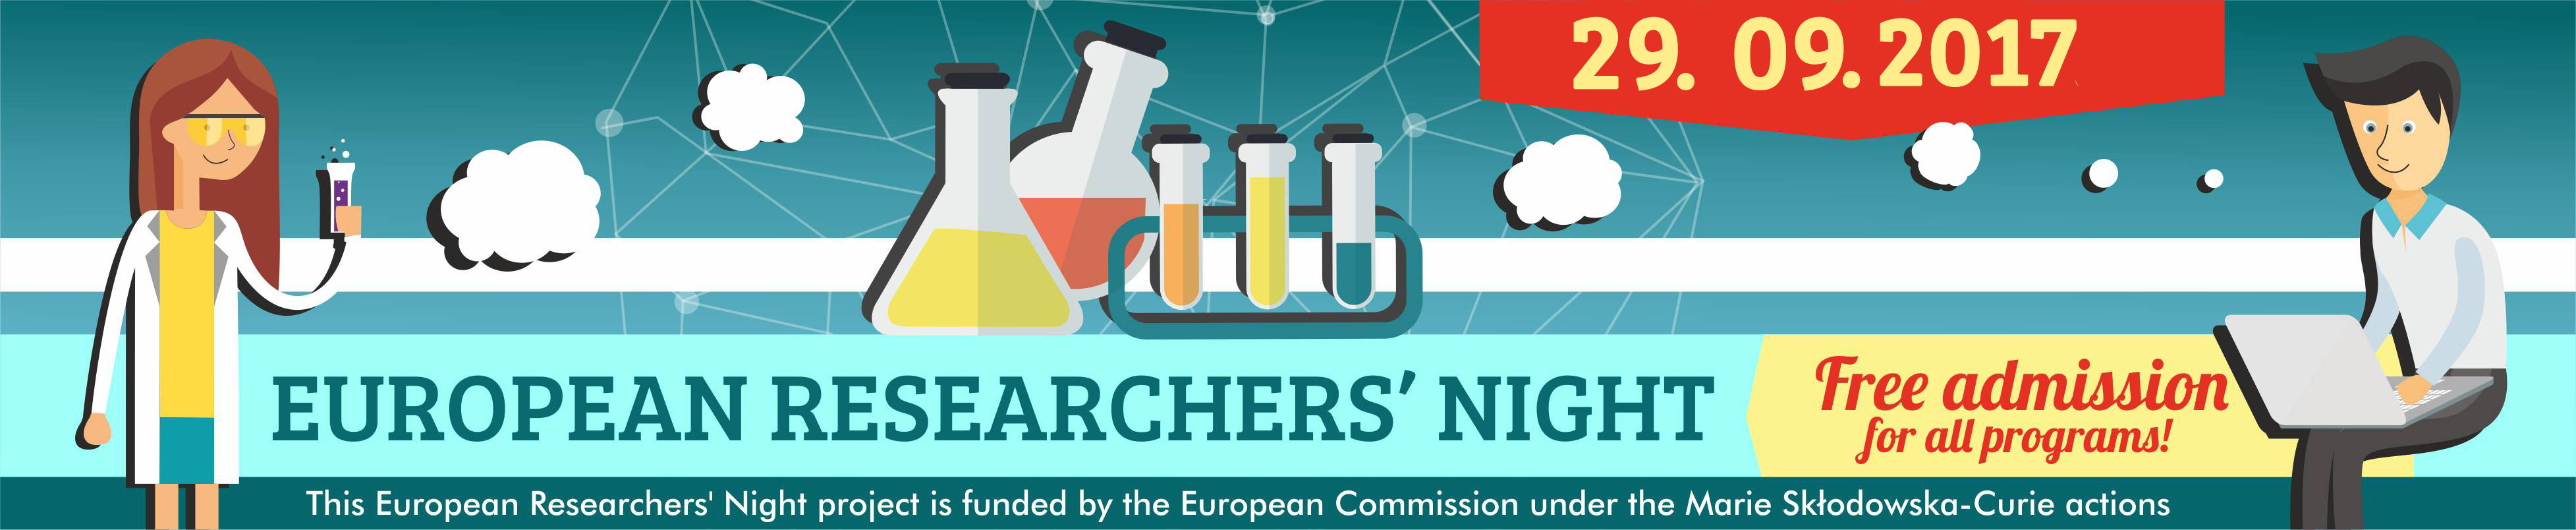 European Researchers' Night